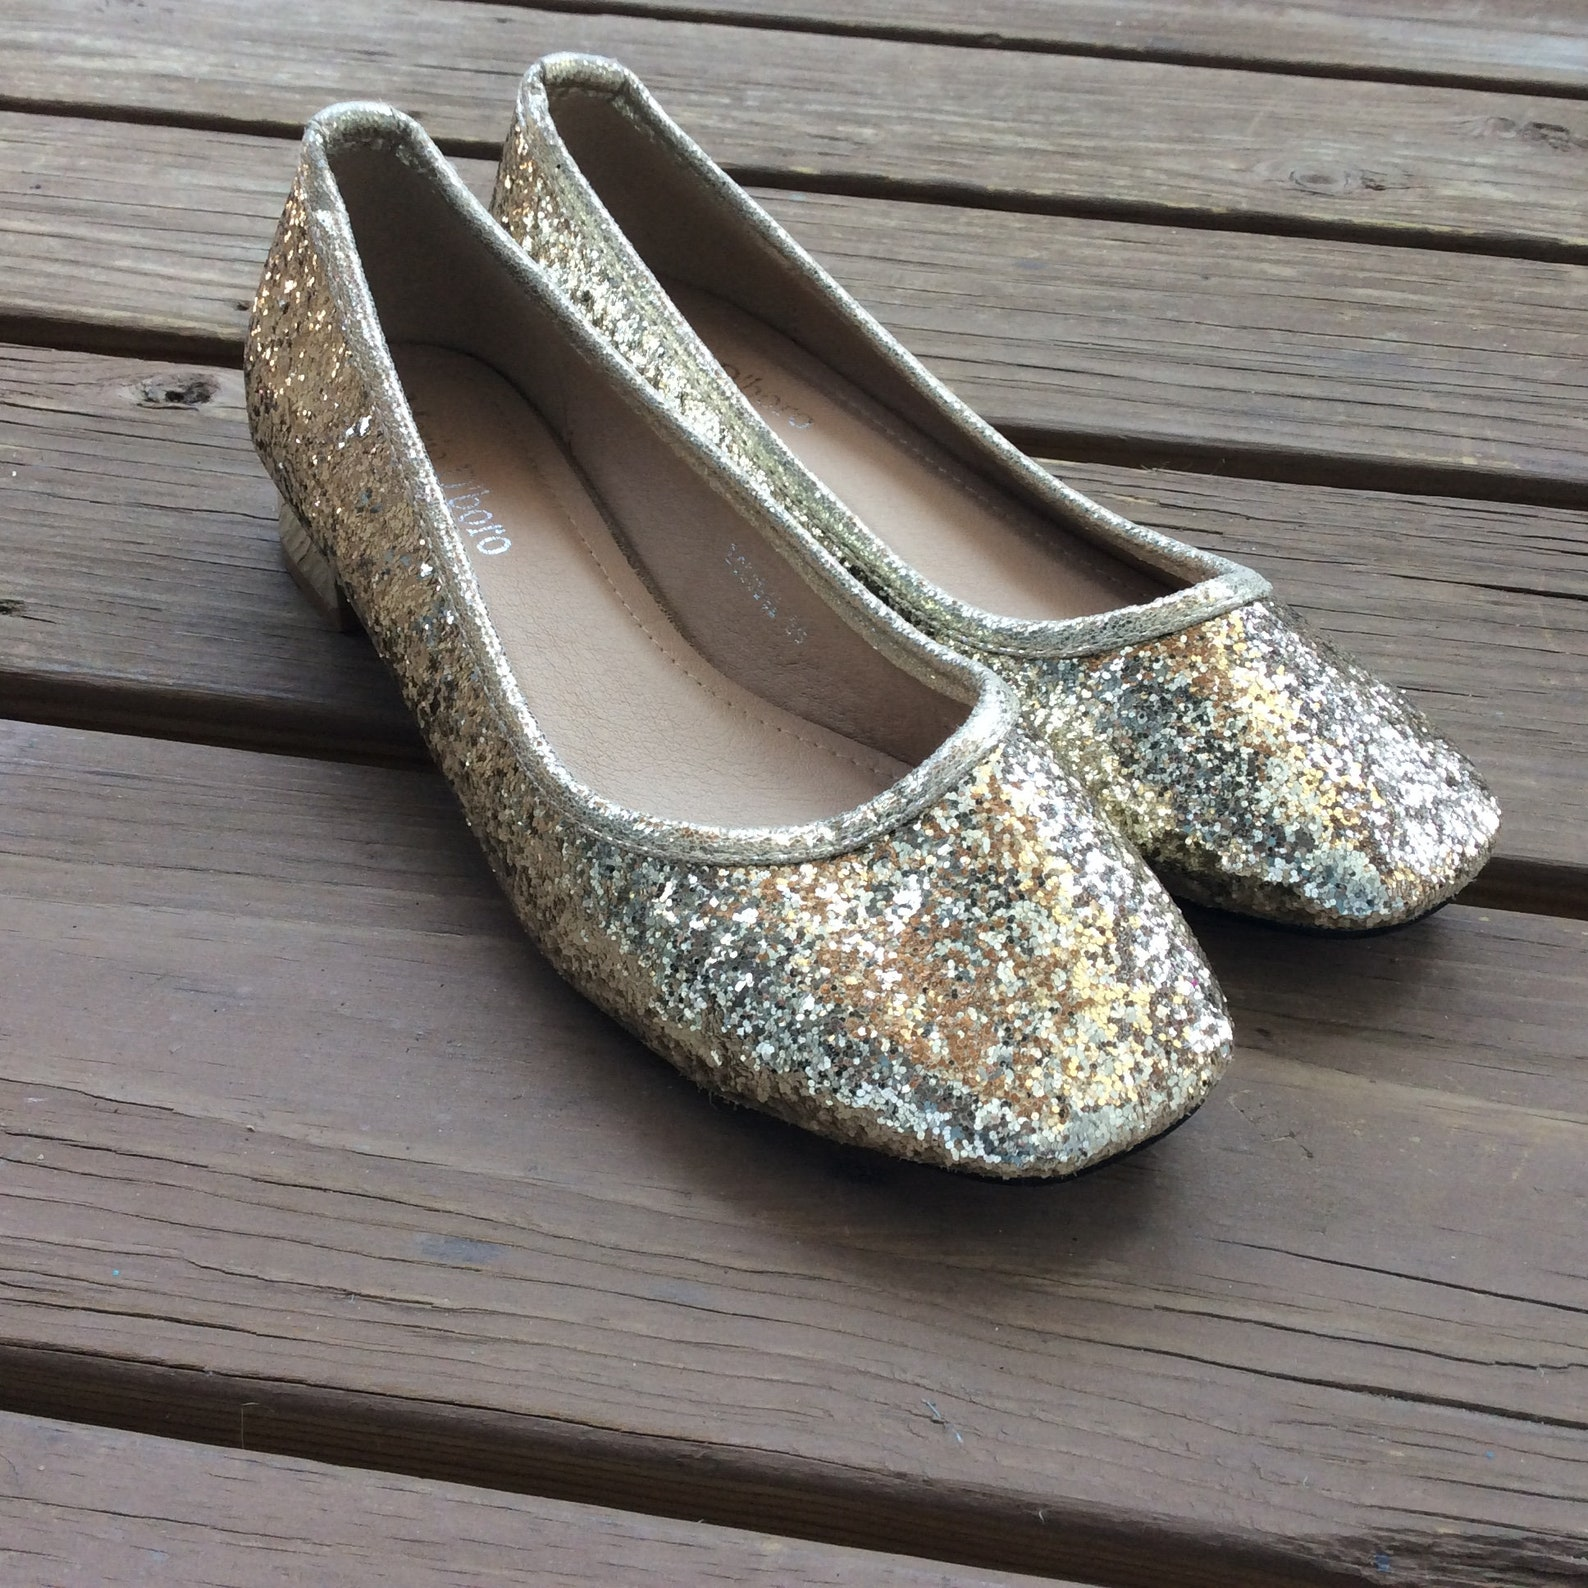 vintage retro gold glitter flats square chunky low heels pumps shoes ballet 8.5